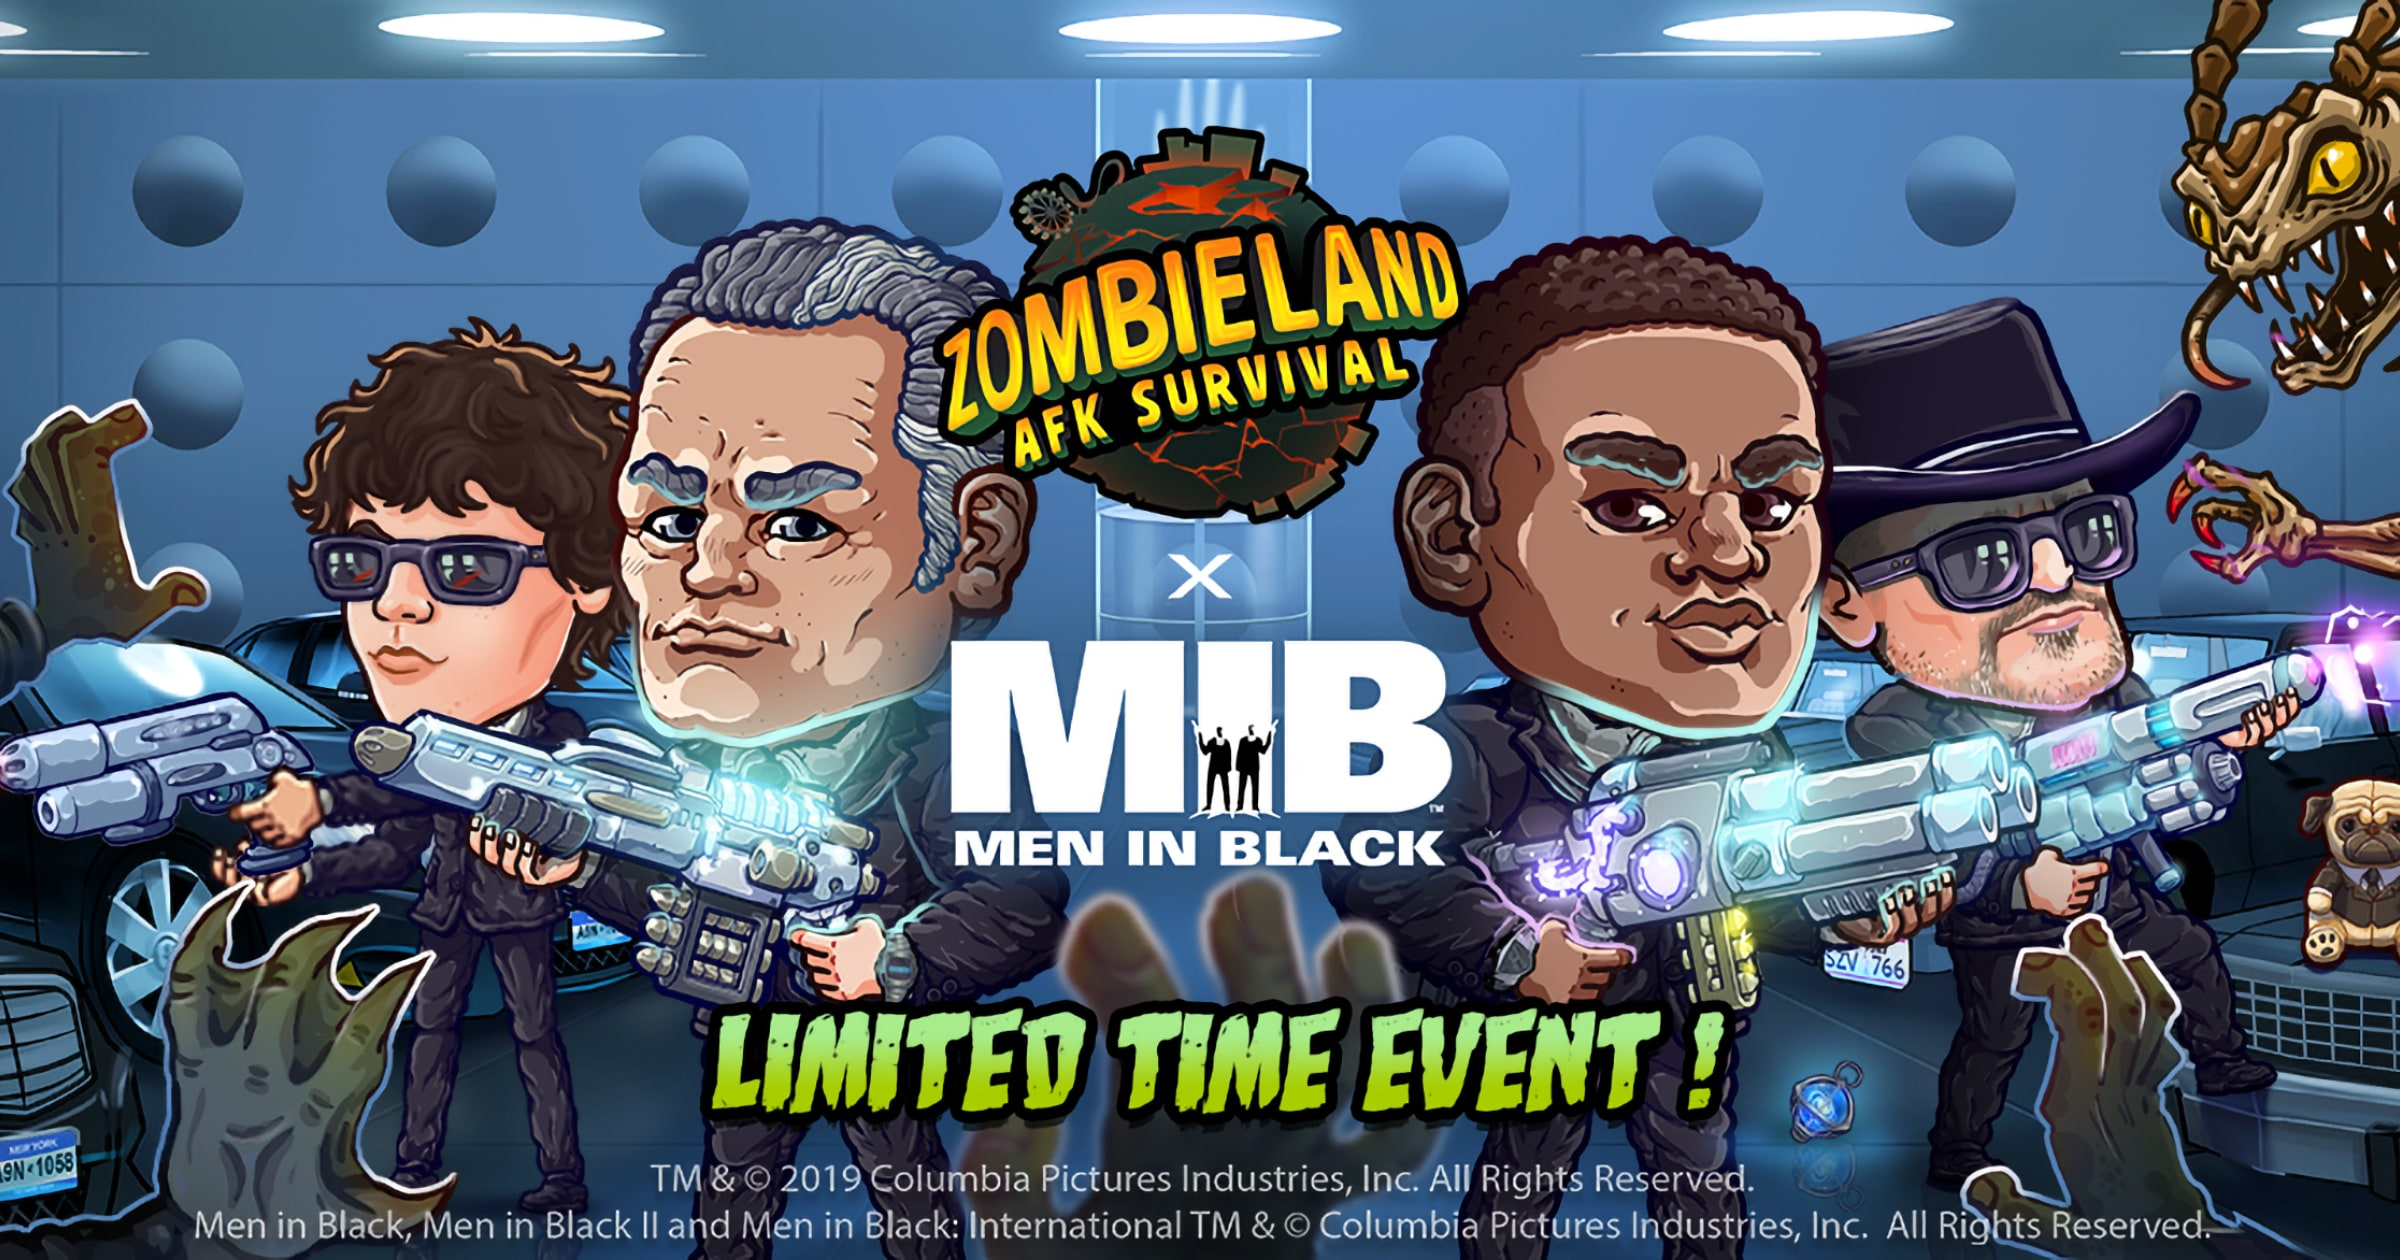 Men In Black Characters Arrive in 'Zombieland: AFK Survival' Game